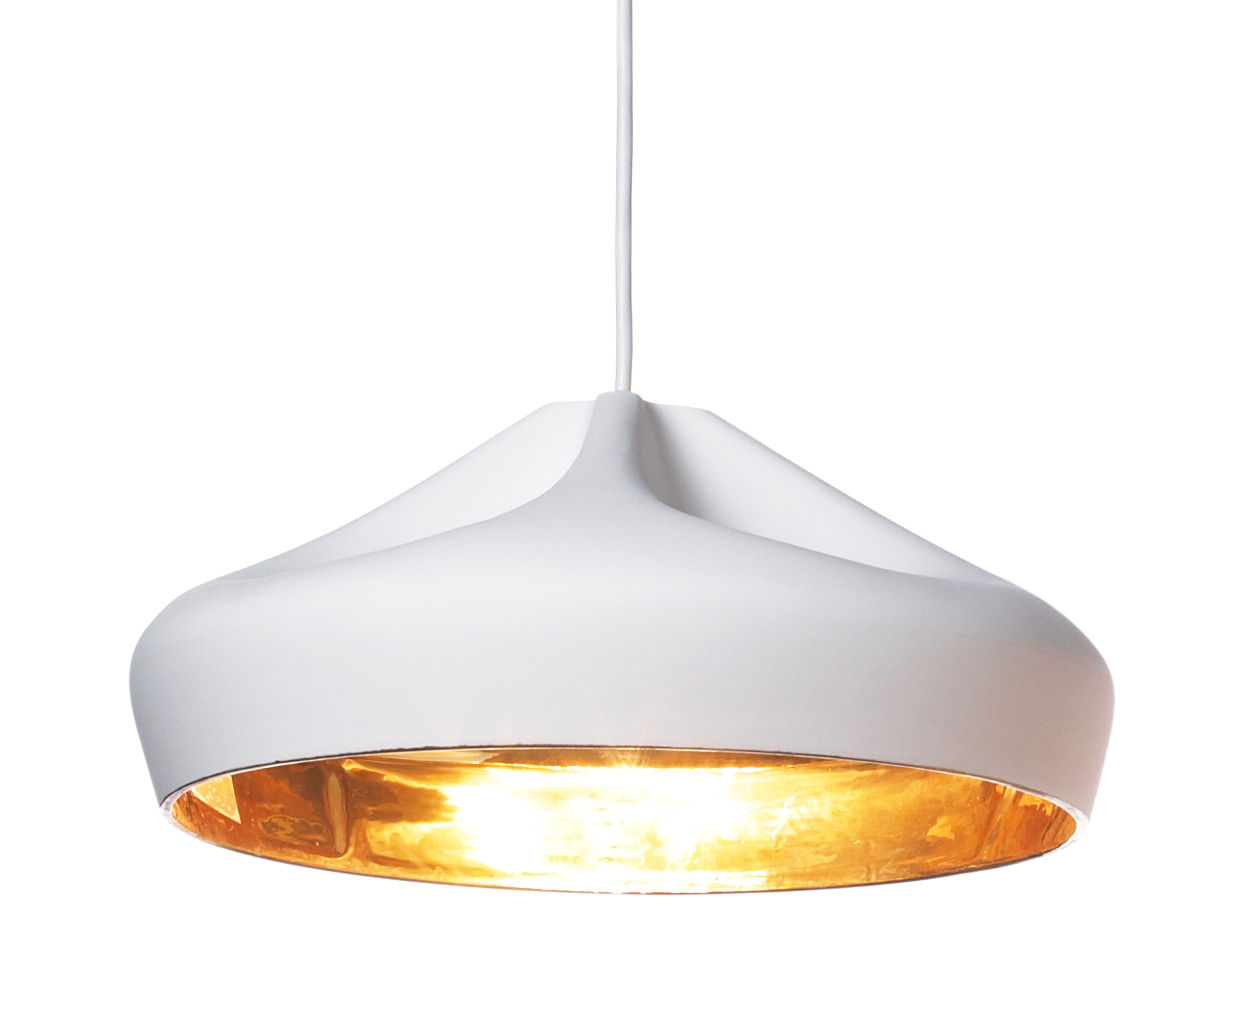 Lighting - Pendant Lighting - Pleat Box 36 Pendant - Ø 34 x H 16 cm - Ceramic by Marset - White / Gold inside - Ceramic